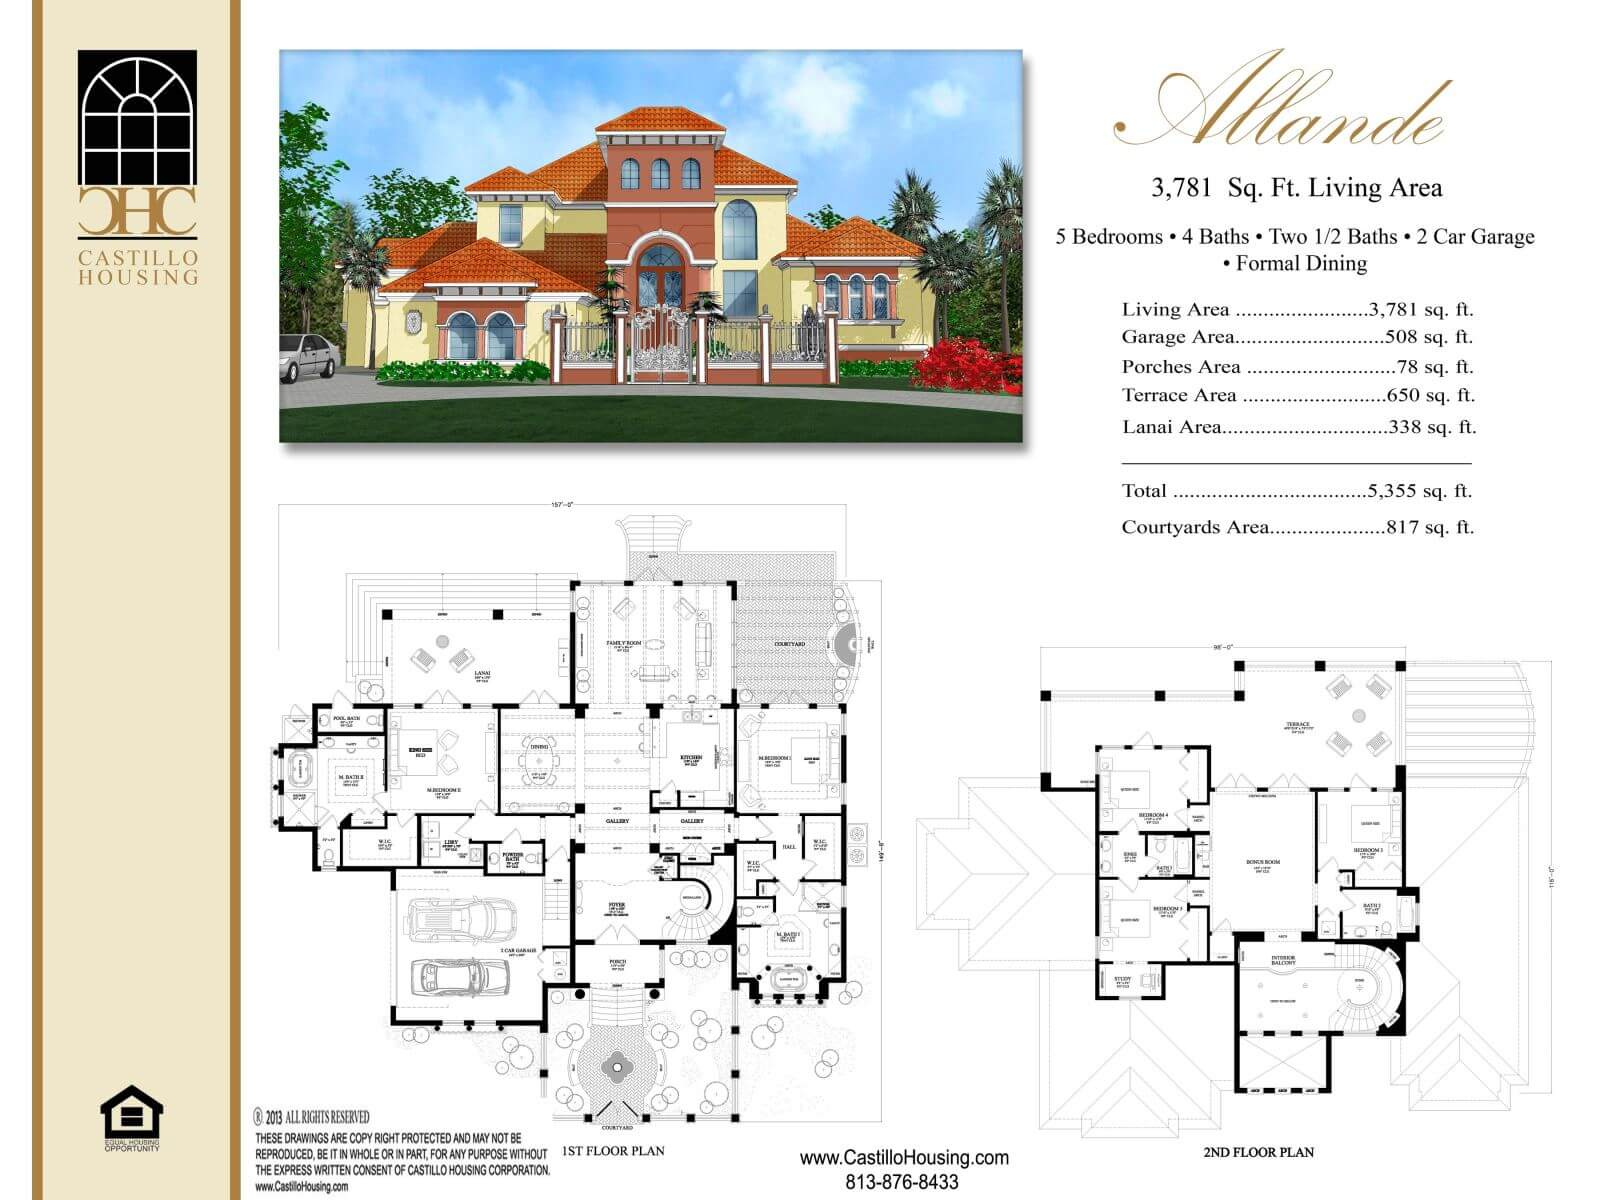 Floor Plans,3,501 SQ FT TO 4,000 SQ FT,1092